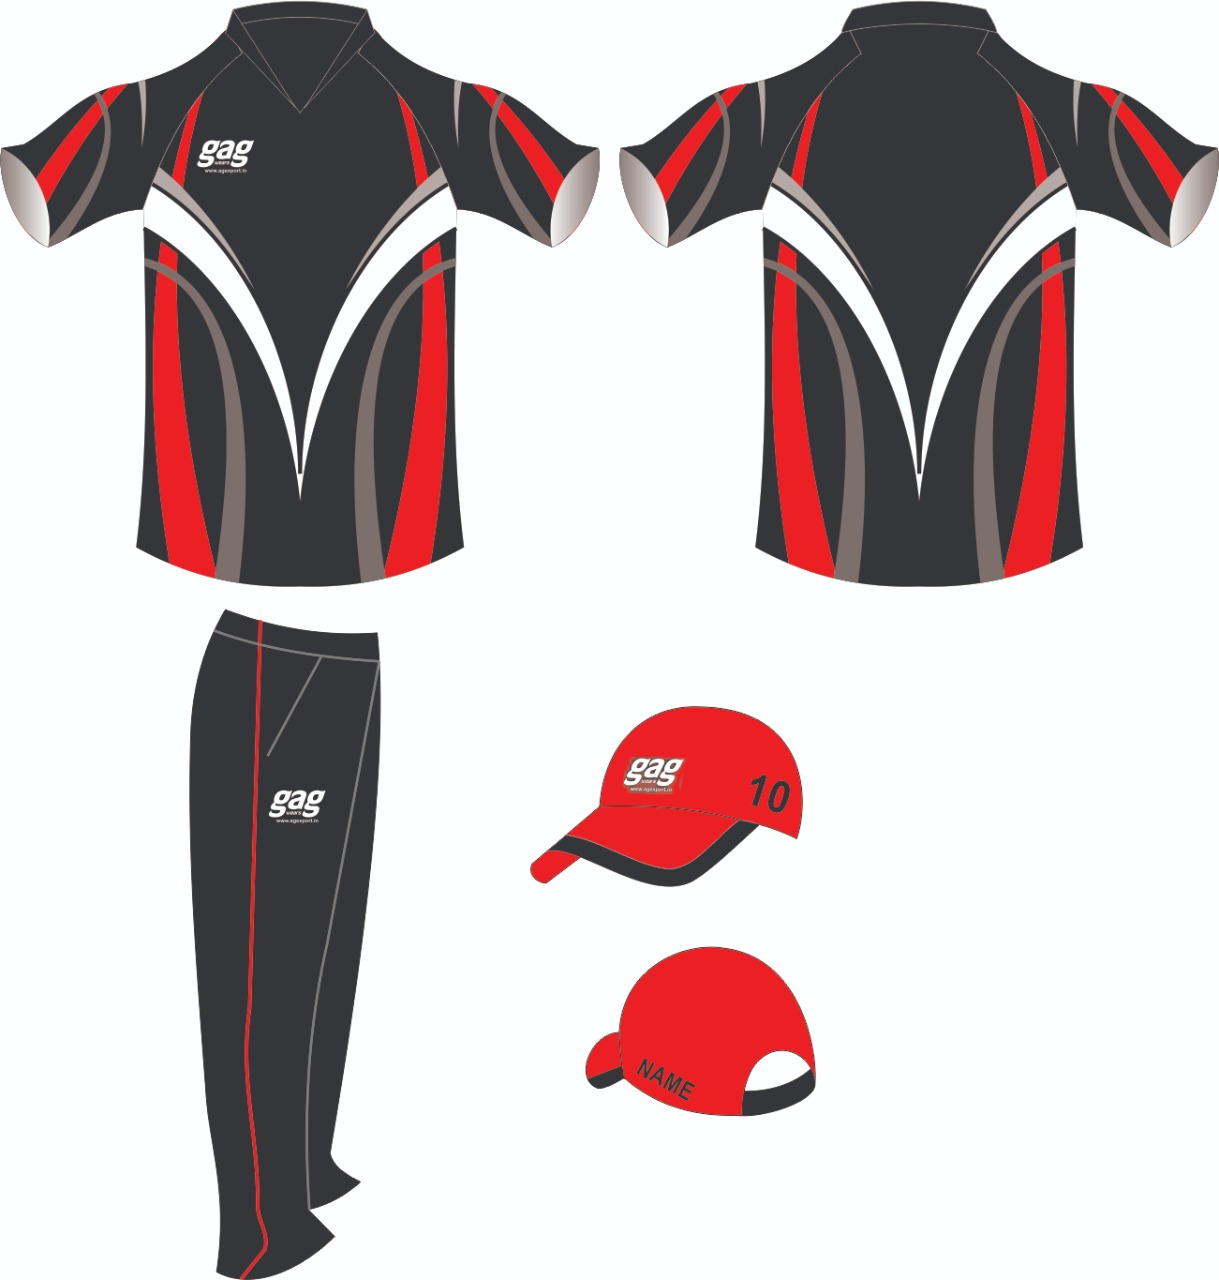 Cricket Clothing Manufacturers in Jalandhar in Austria